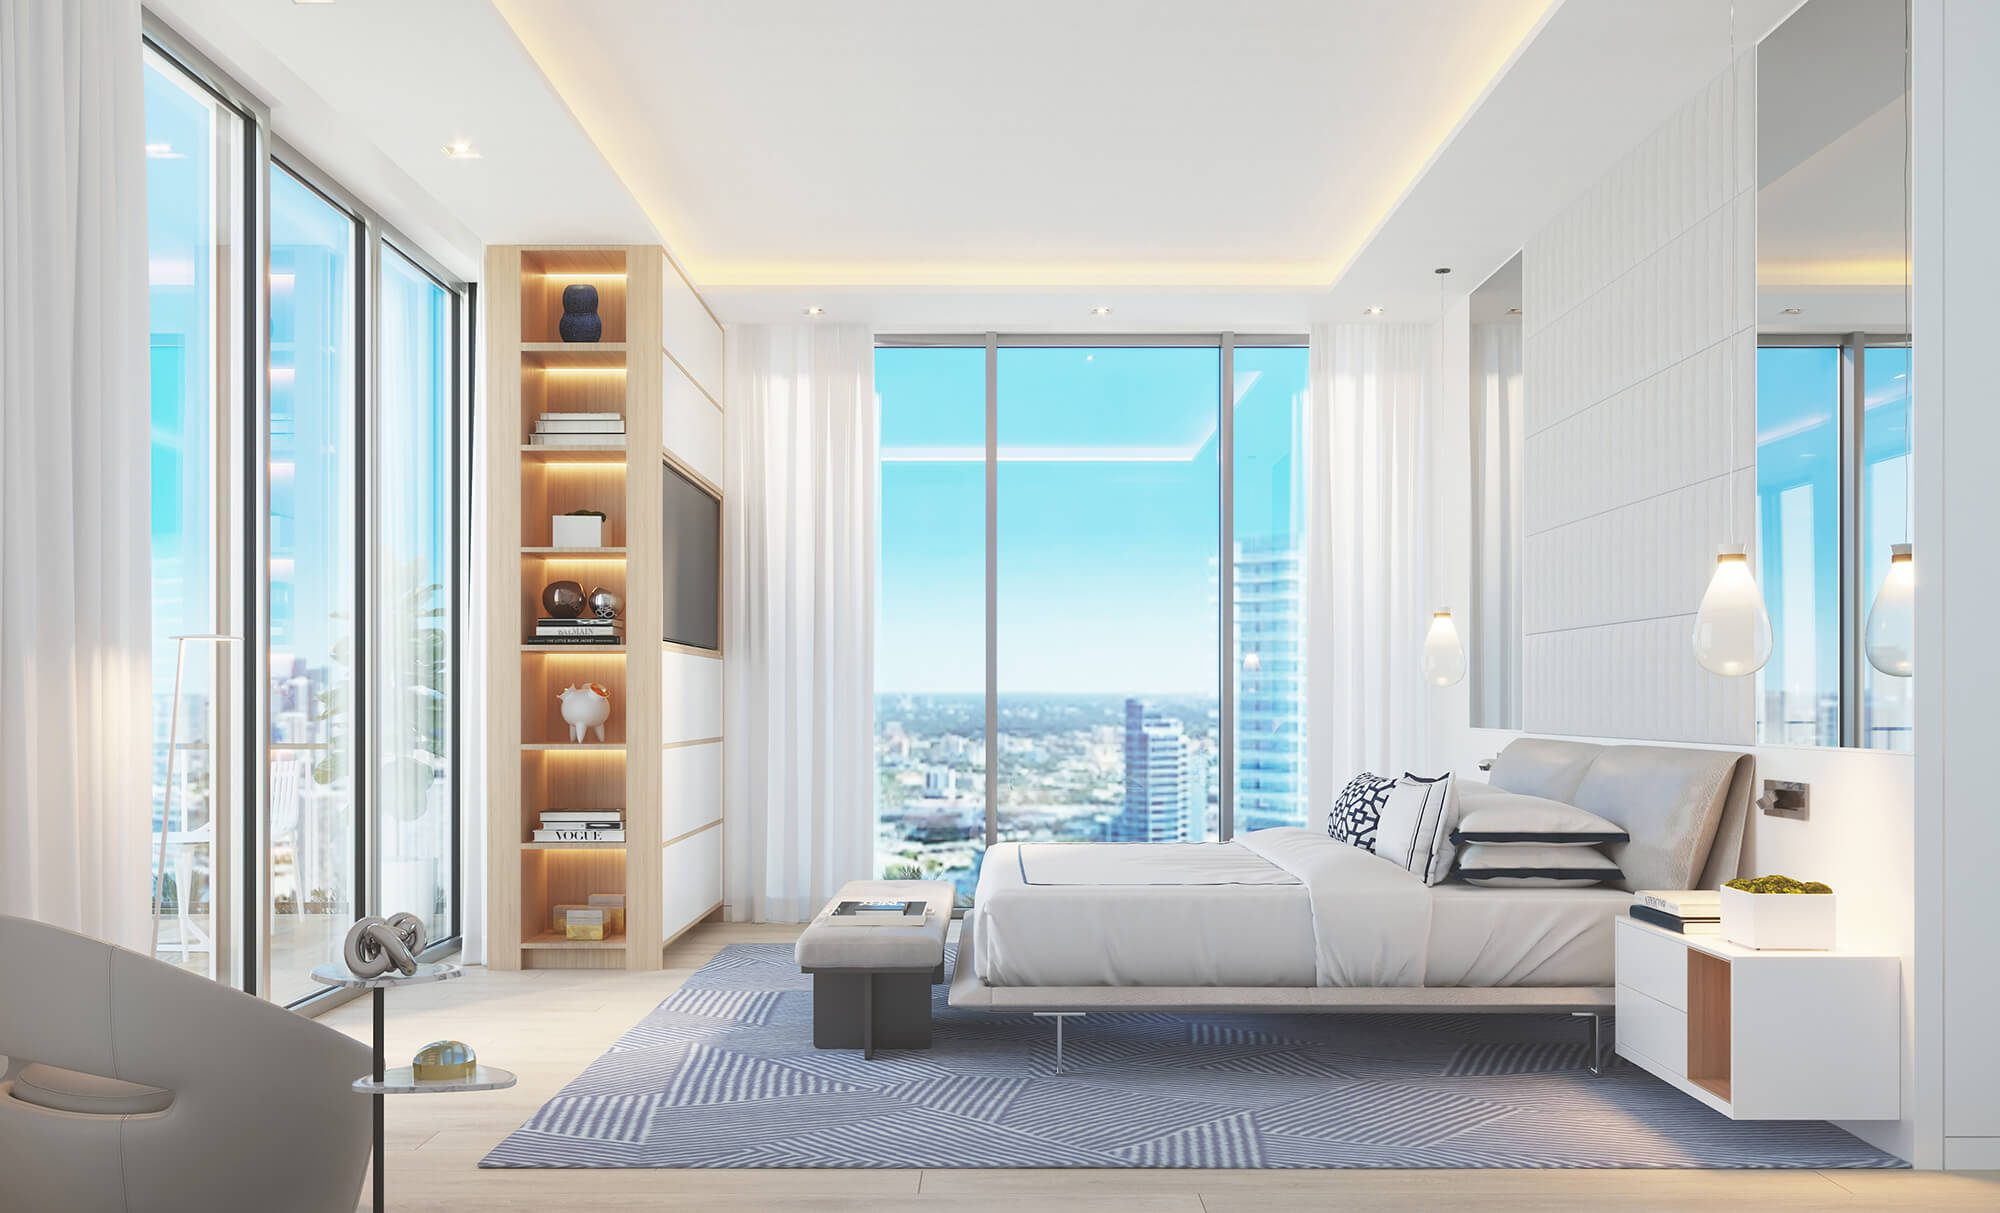 Interior Design Miami Professionals - Best Residential Interior Design Firm with projects internationally and concentrated in the South Florida region.